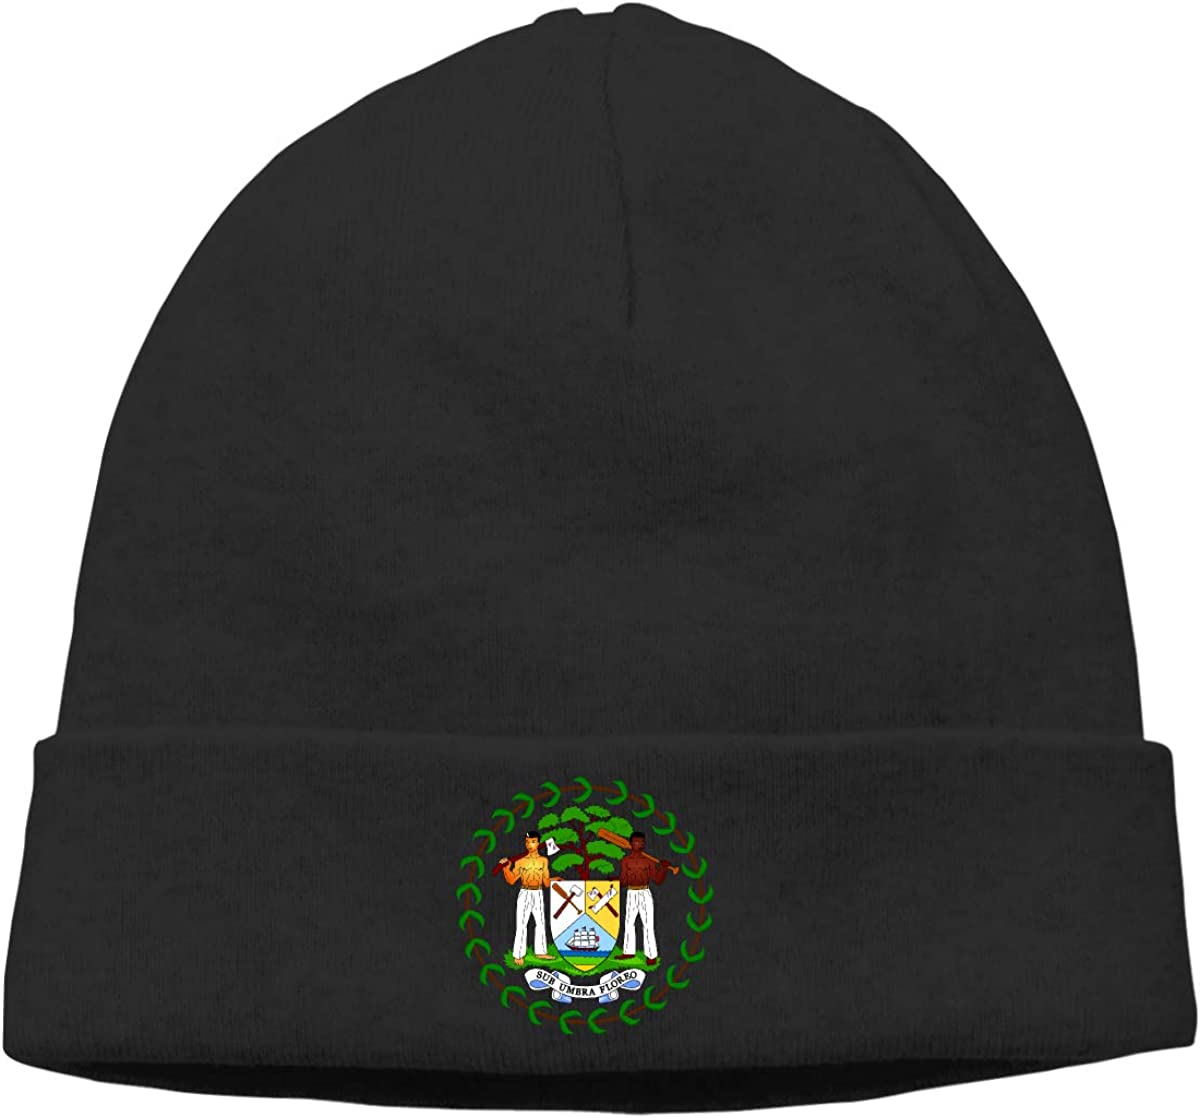 Nskngr Coat of Arms of Belize Cap Men /& Women Chunky Serious Beanies Winter Hats